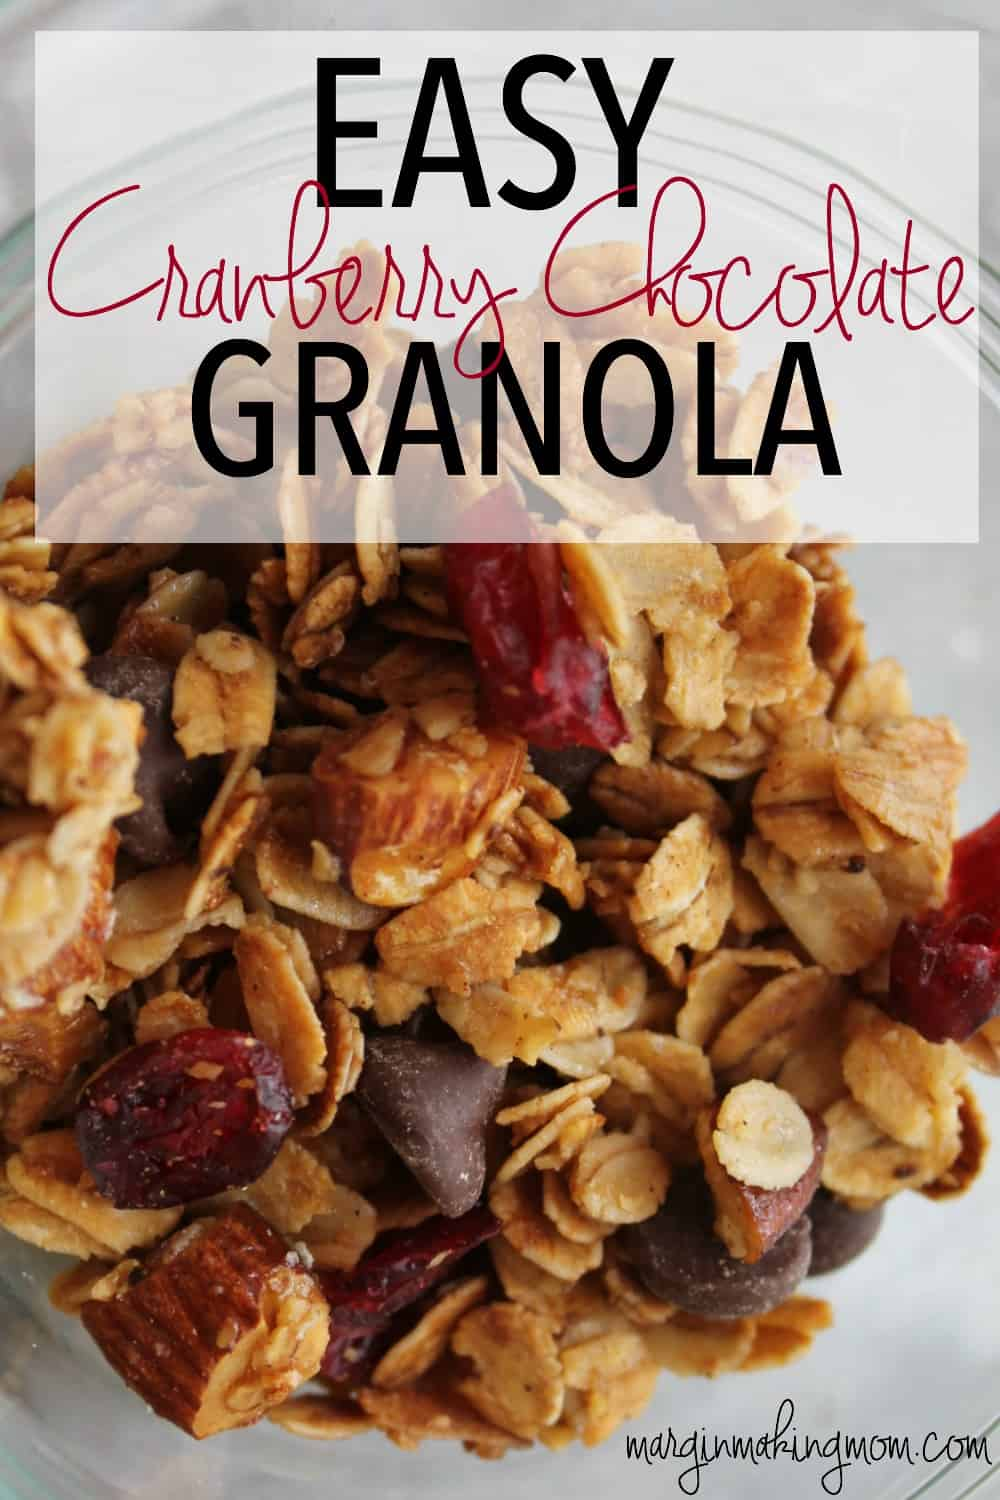 I love the sweet, crunchy perfection of this perfectly easy cranberry chocolate granola. It is great by itself or as a yummy topping for yogurt or ice cream!